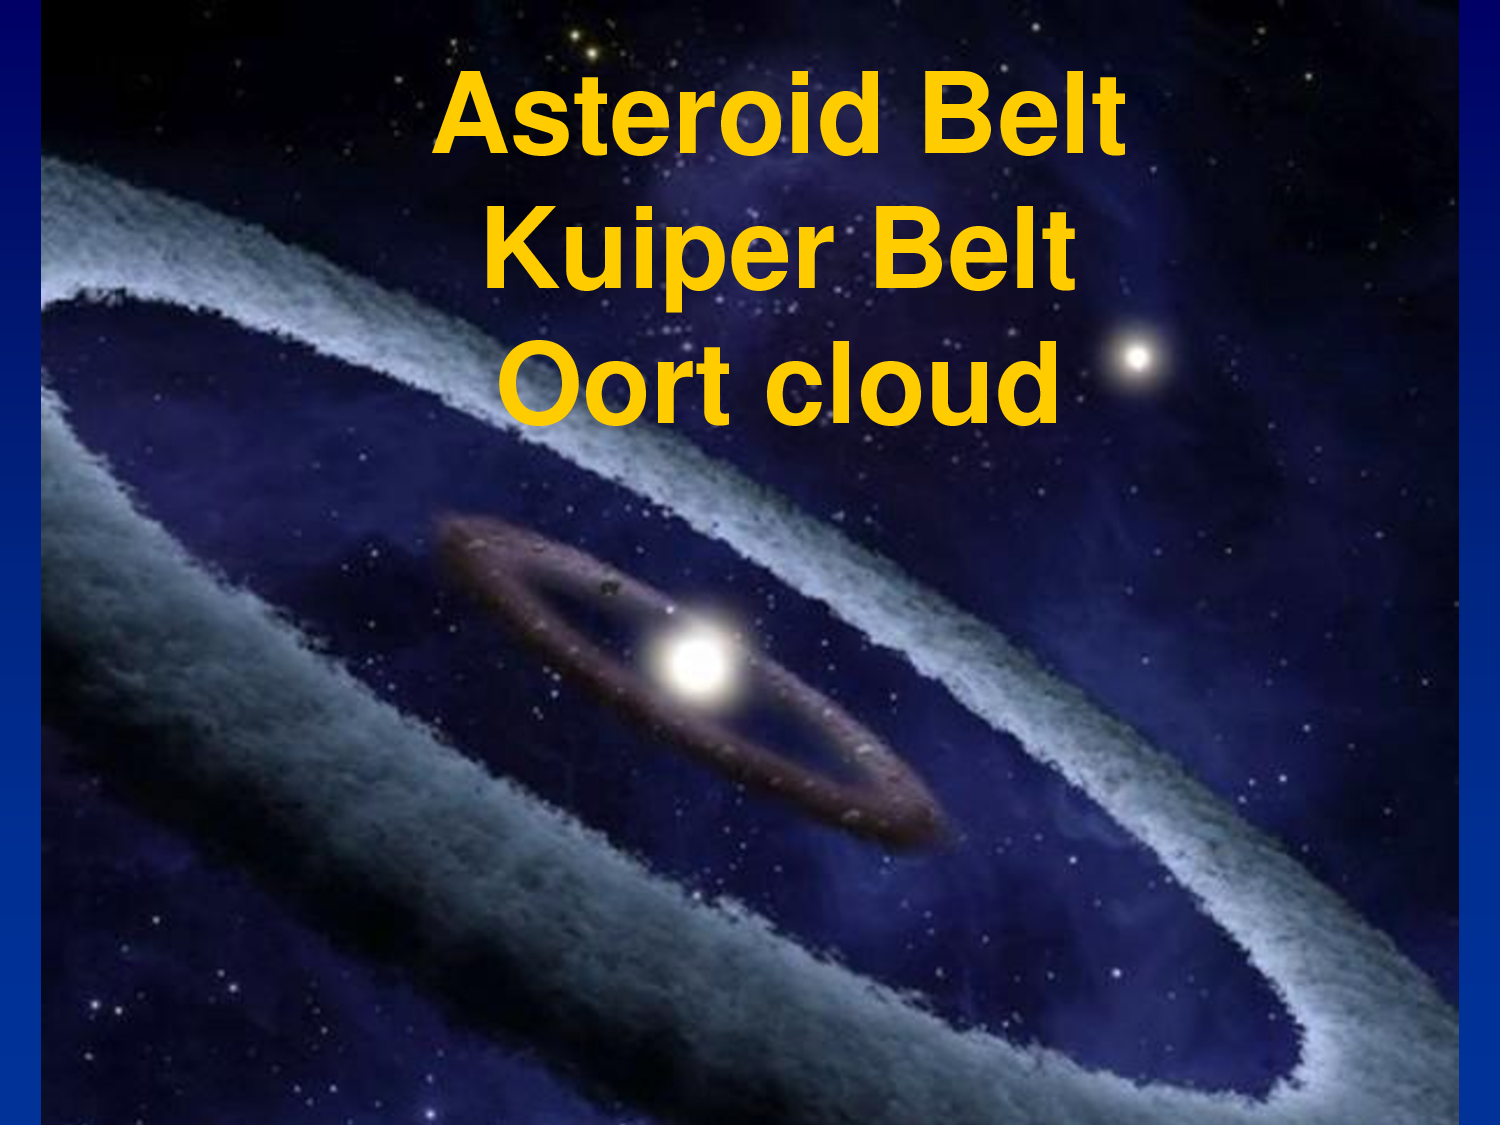 kuiper belt vs oort cloud - photo #4